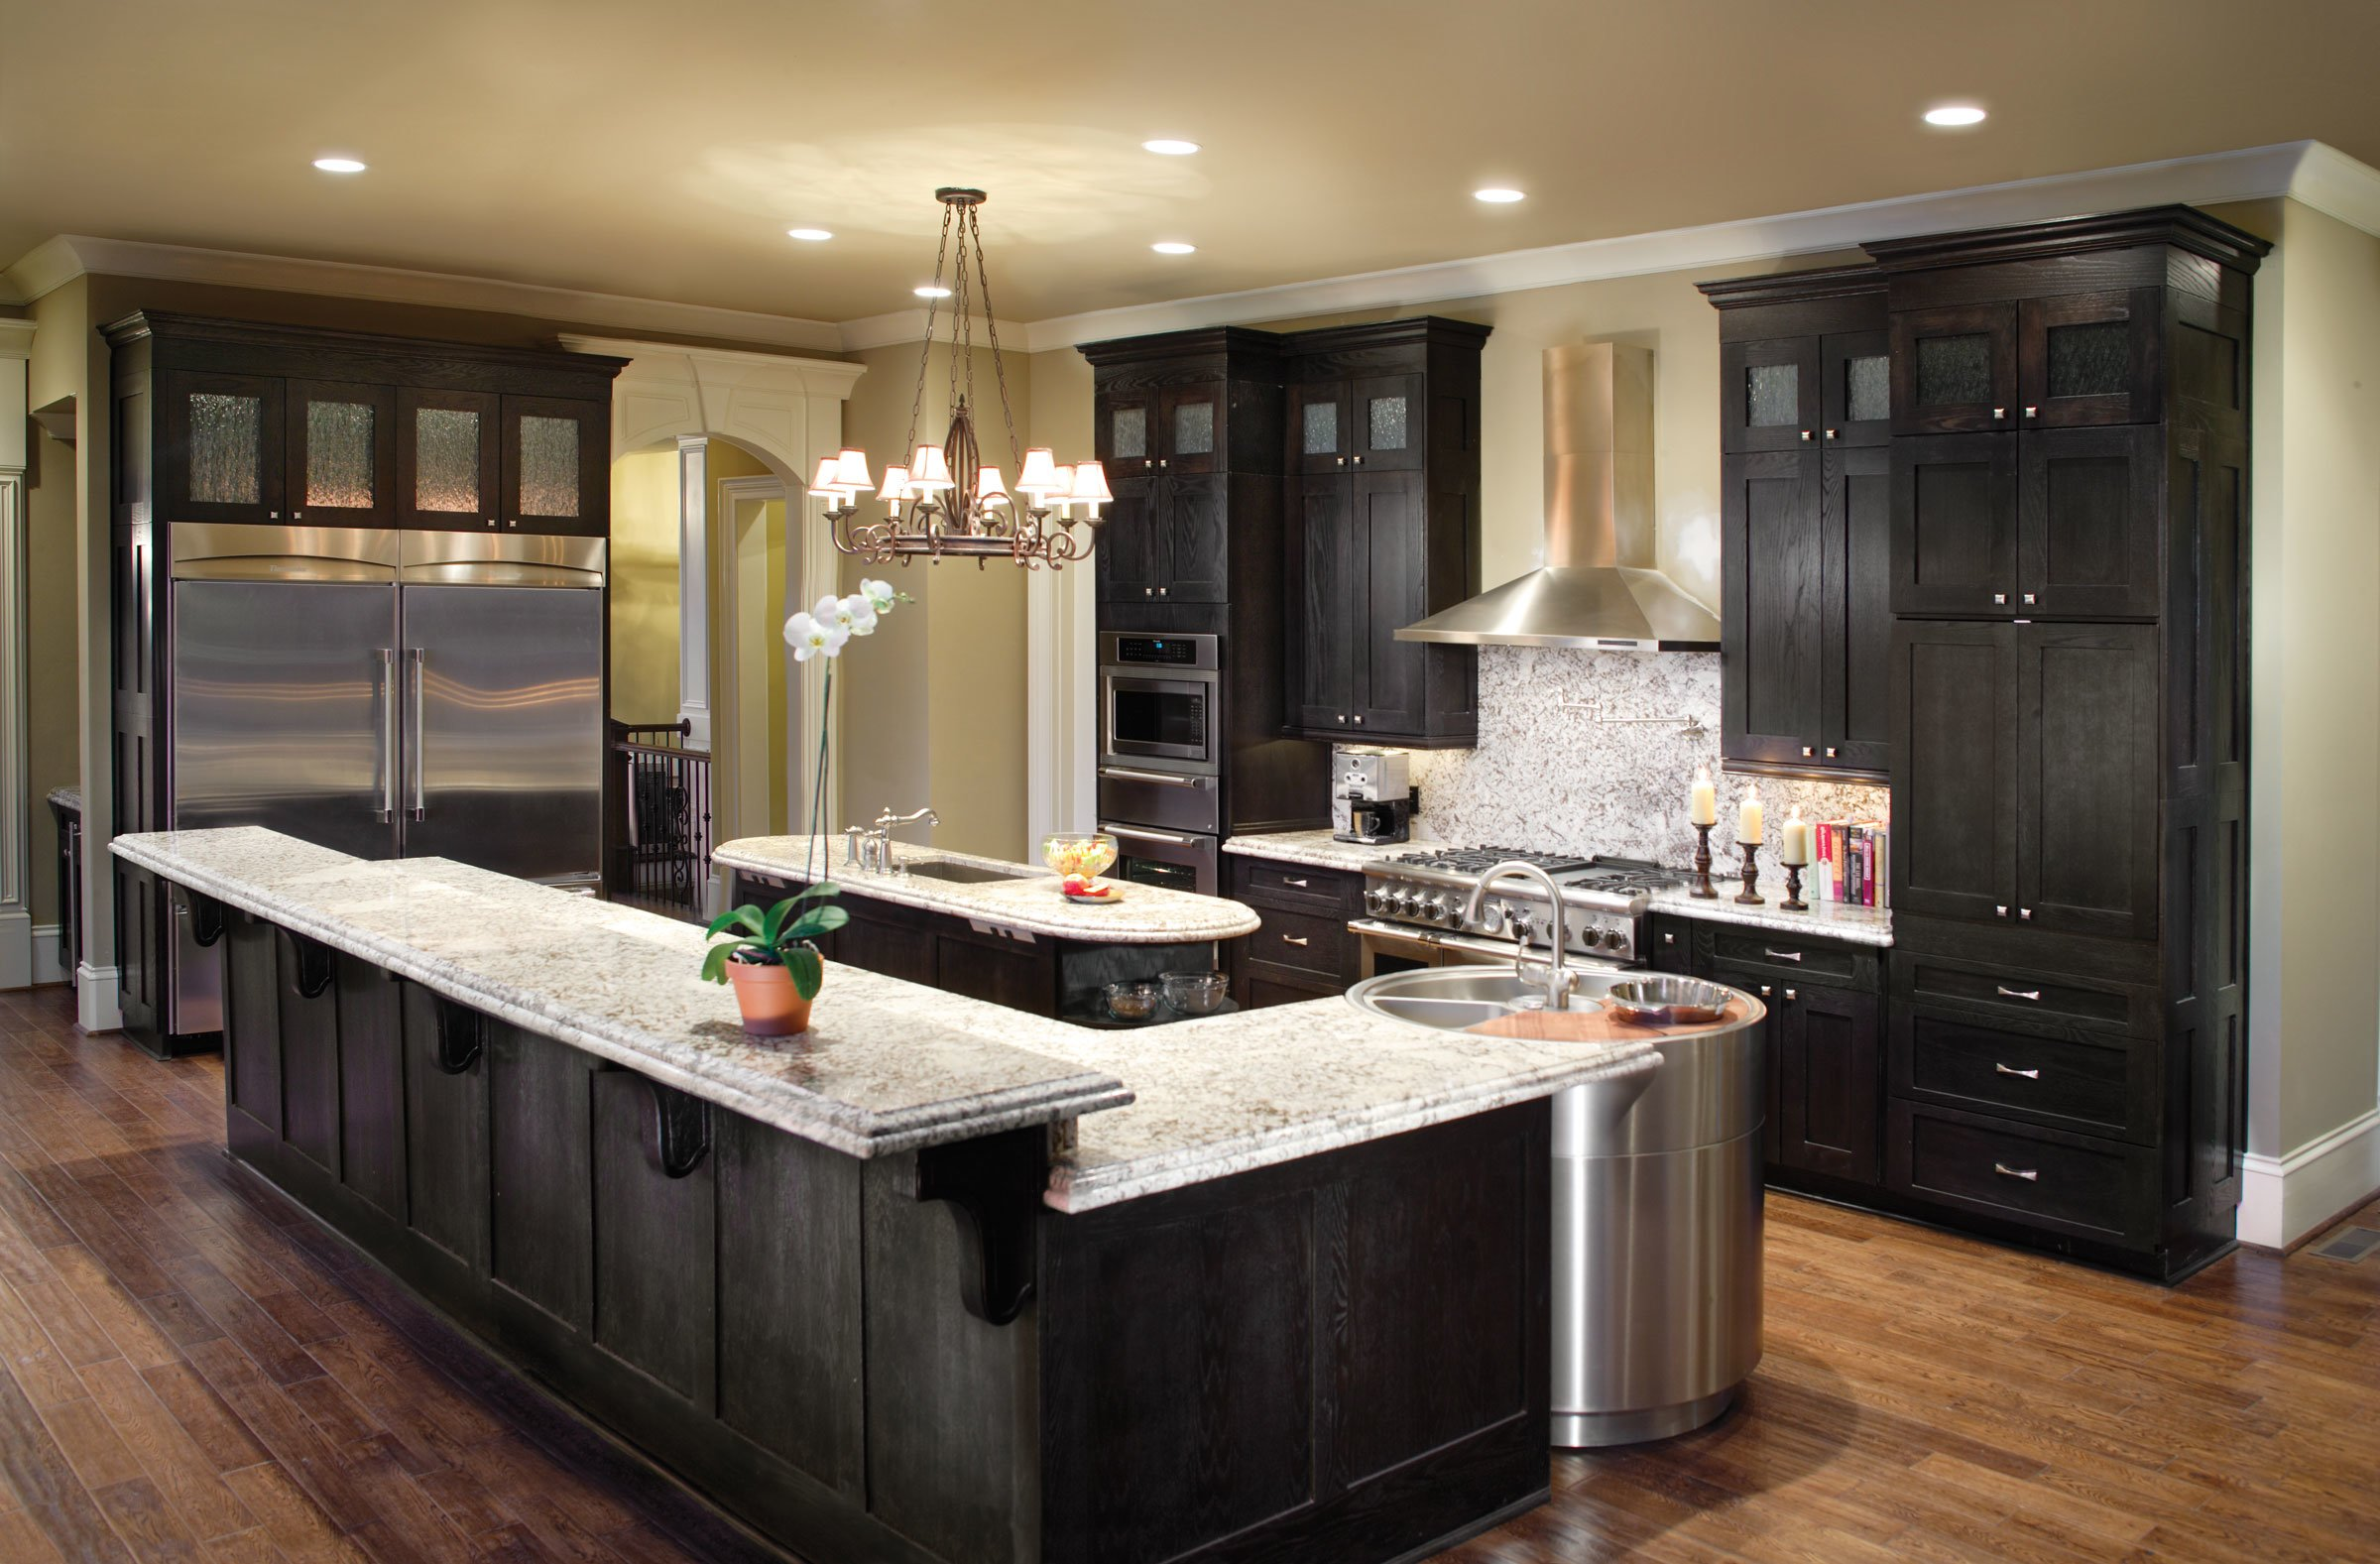 Kitchen & Bathroom Cabinets Phoenix